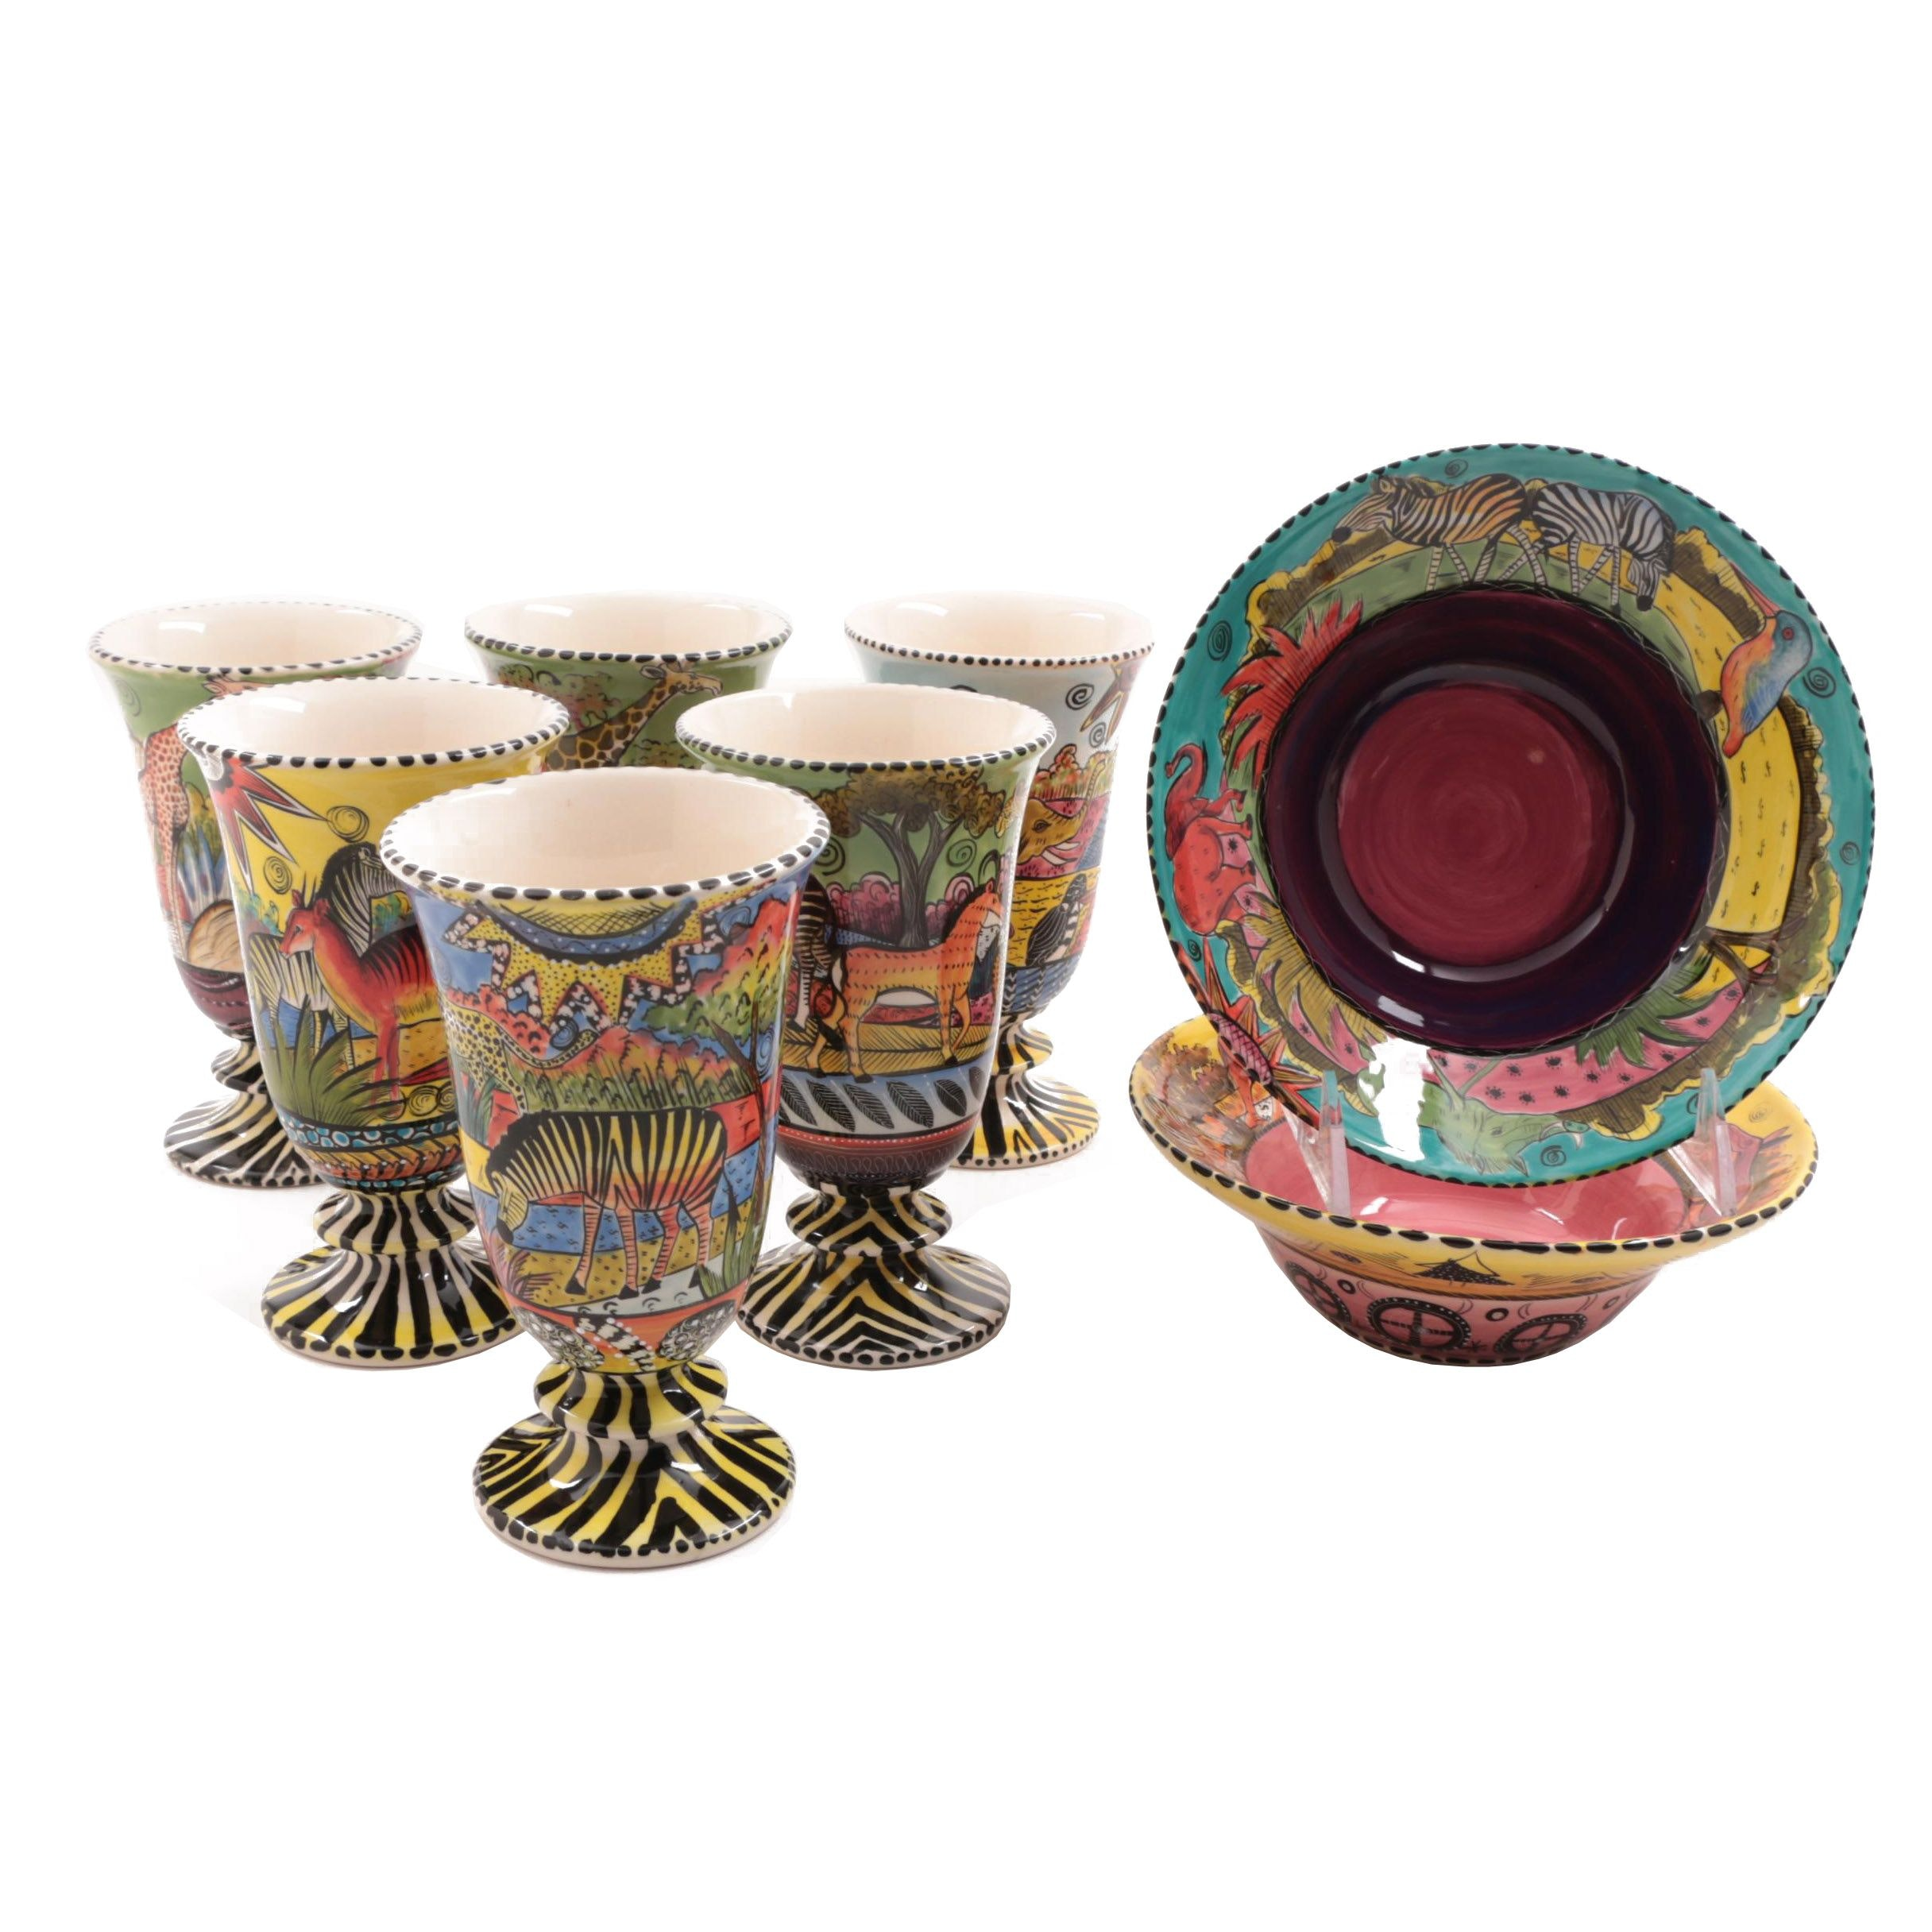 Penzo Zimbabwe Hand-Painted Pottery Goblets and Bowls